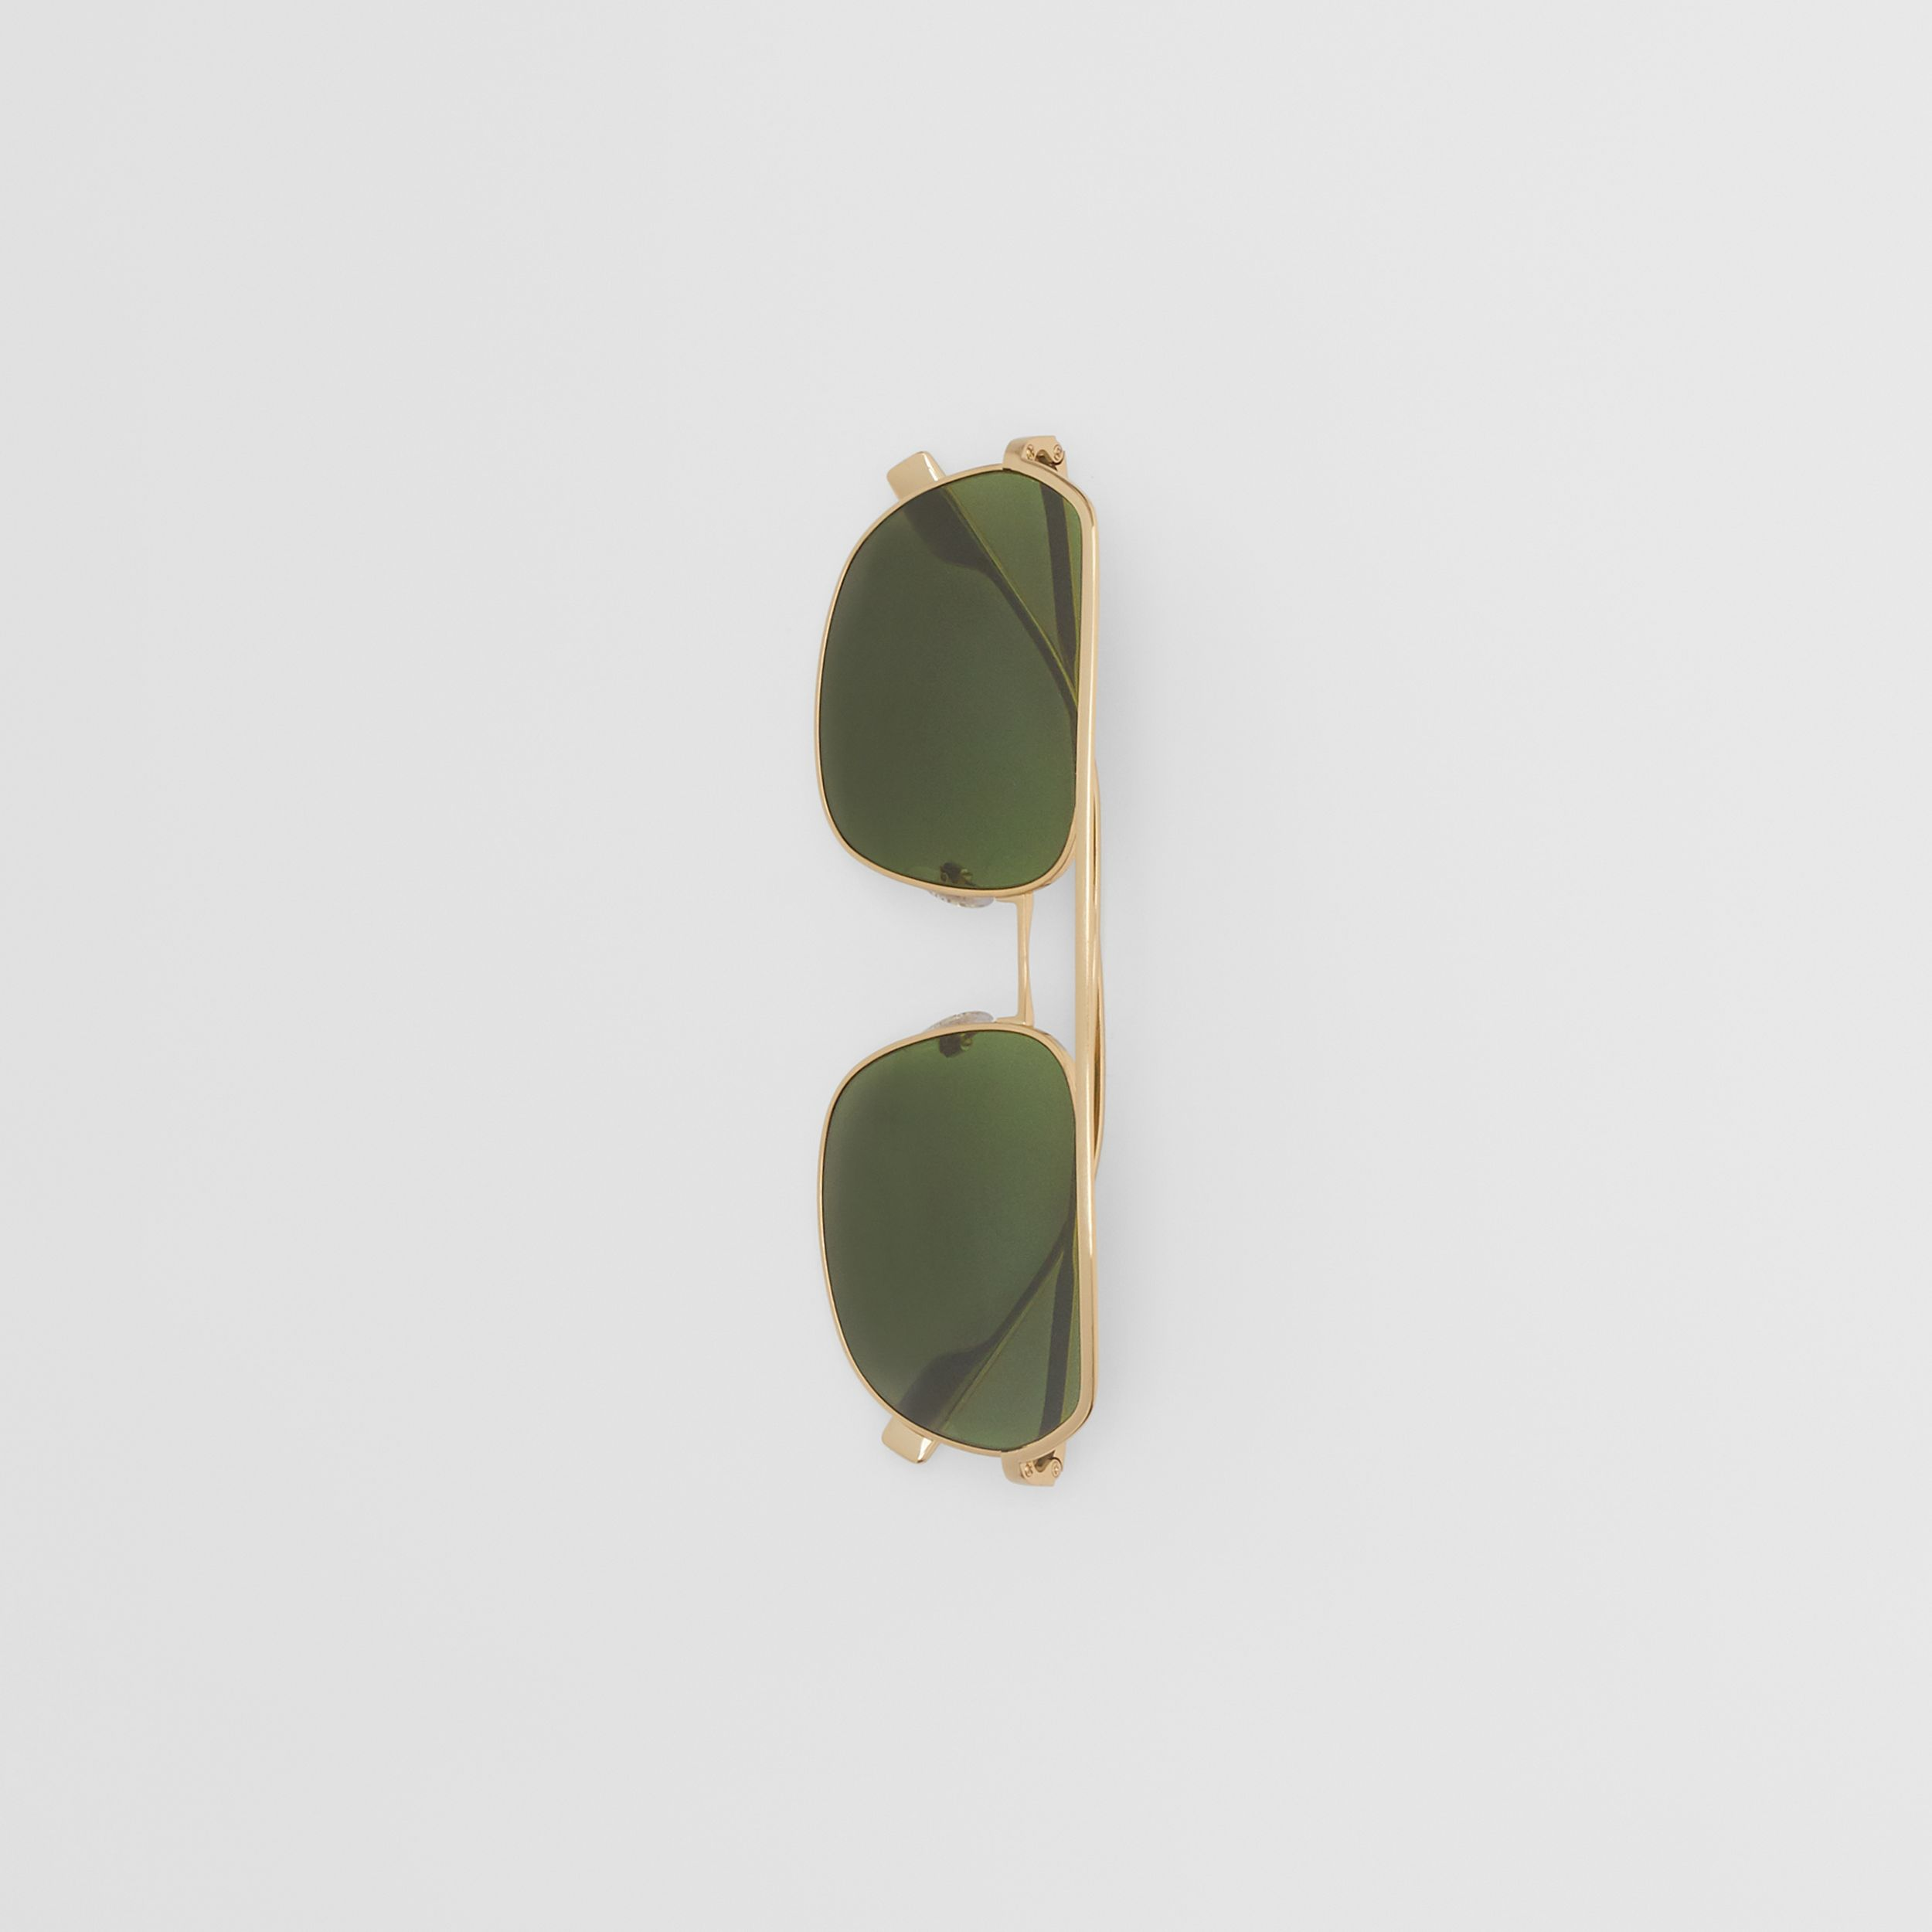 Square Pilot Sunglasses in Vintage Brushed Gold - Men | Burberry Australia - 4